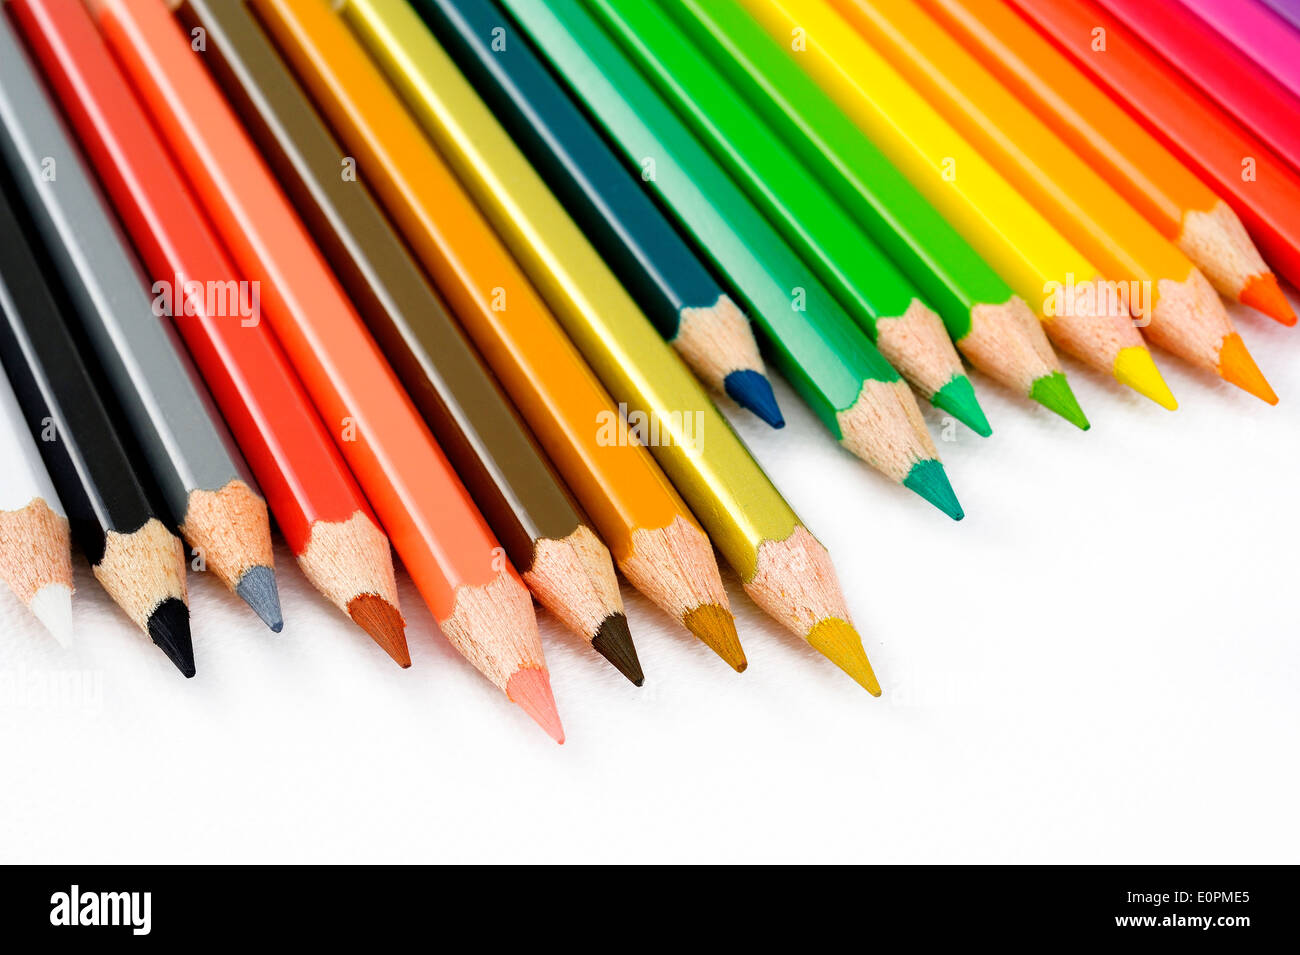 color pencil on white background - Stock Image